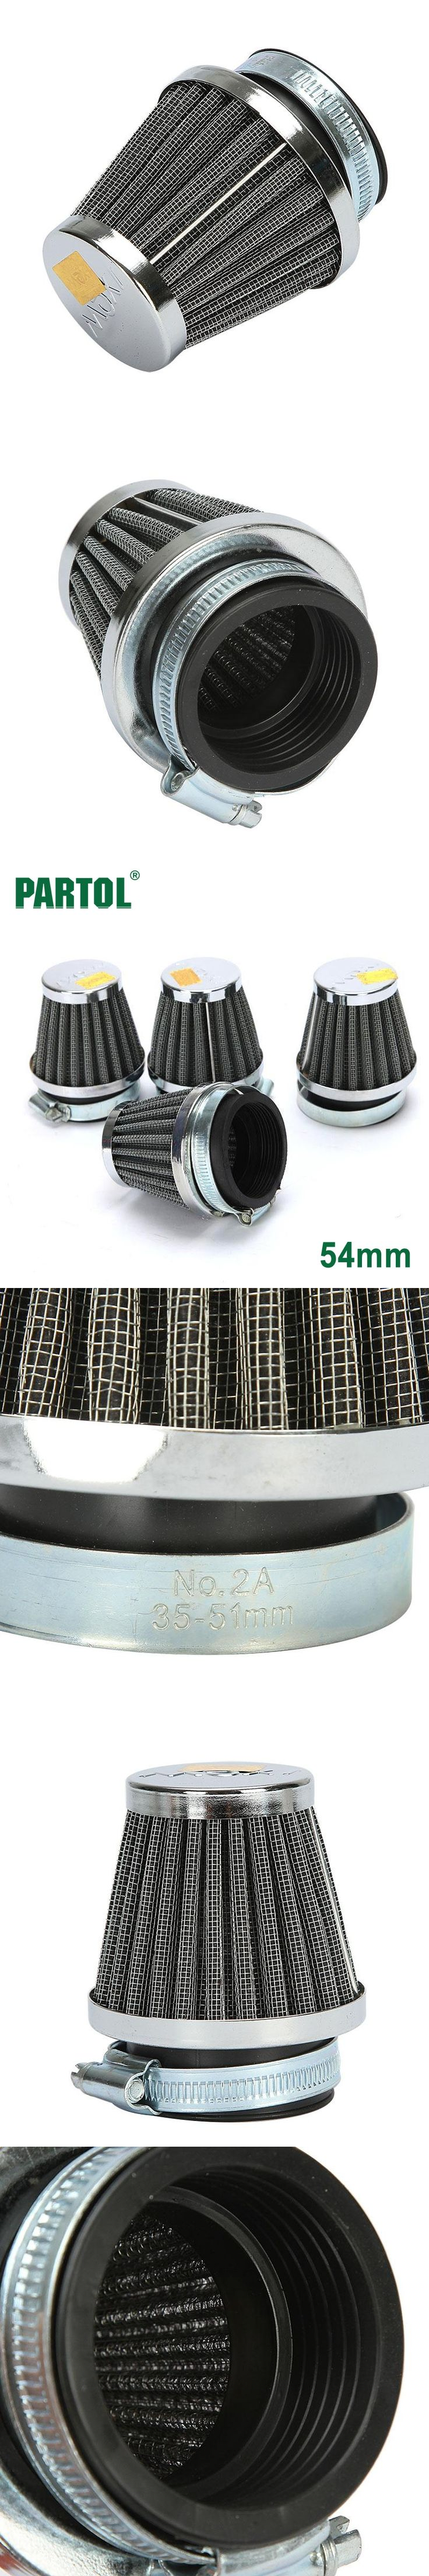 Partol 4x 54mm Conical Style Motorcycle Air Filter Mushroom Air Intake Filters Adjustable Clamp For Kawasaki Yamaha  Scooter